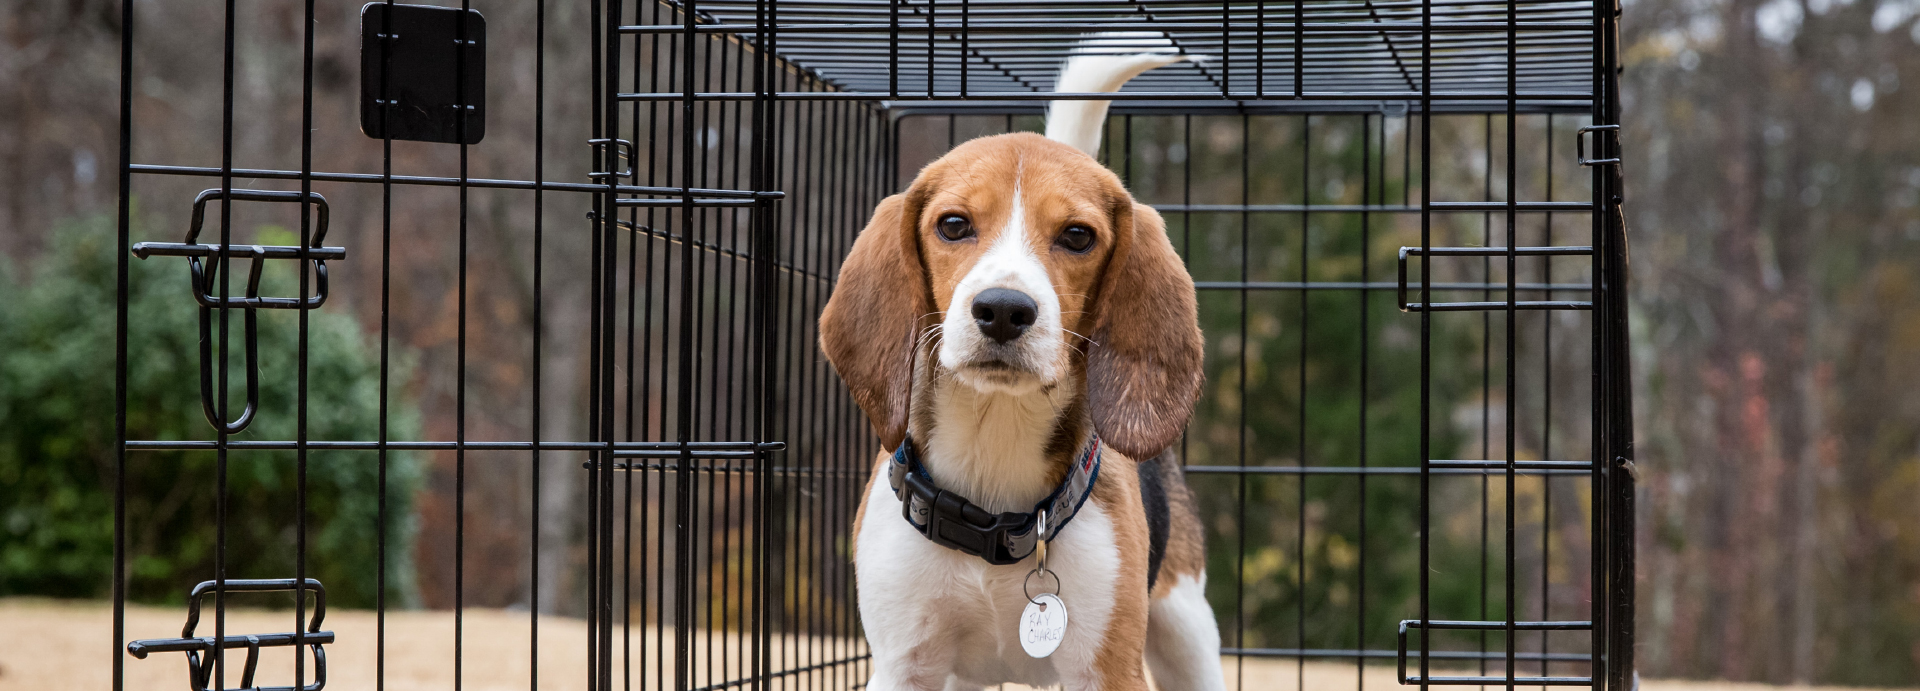 Beagle Freedom Bill provides for adoption after lab research is over